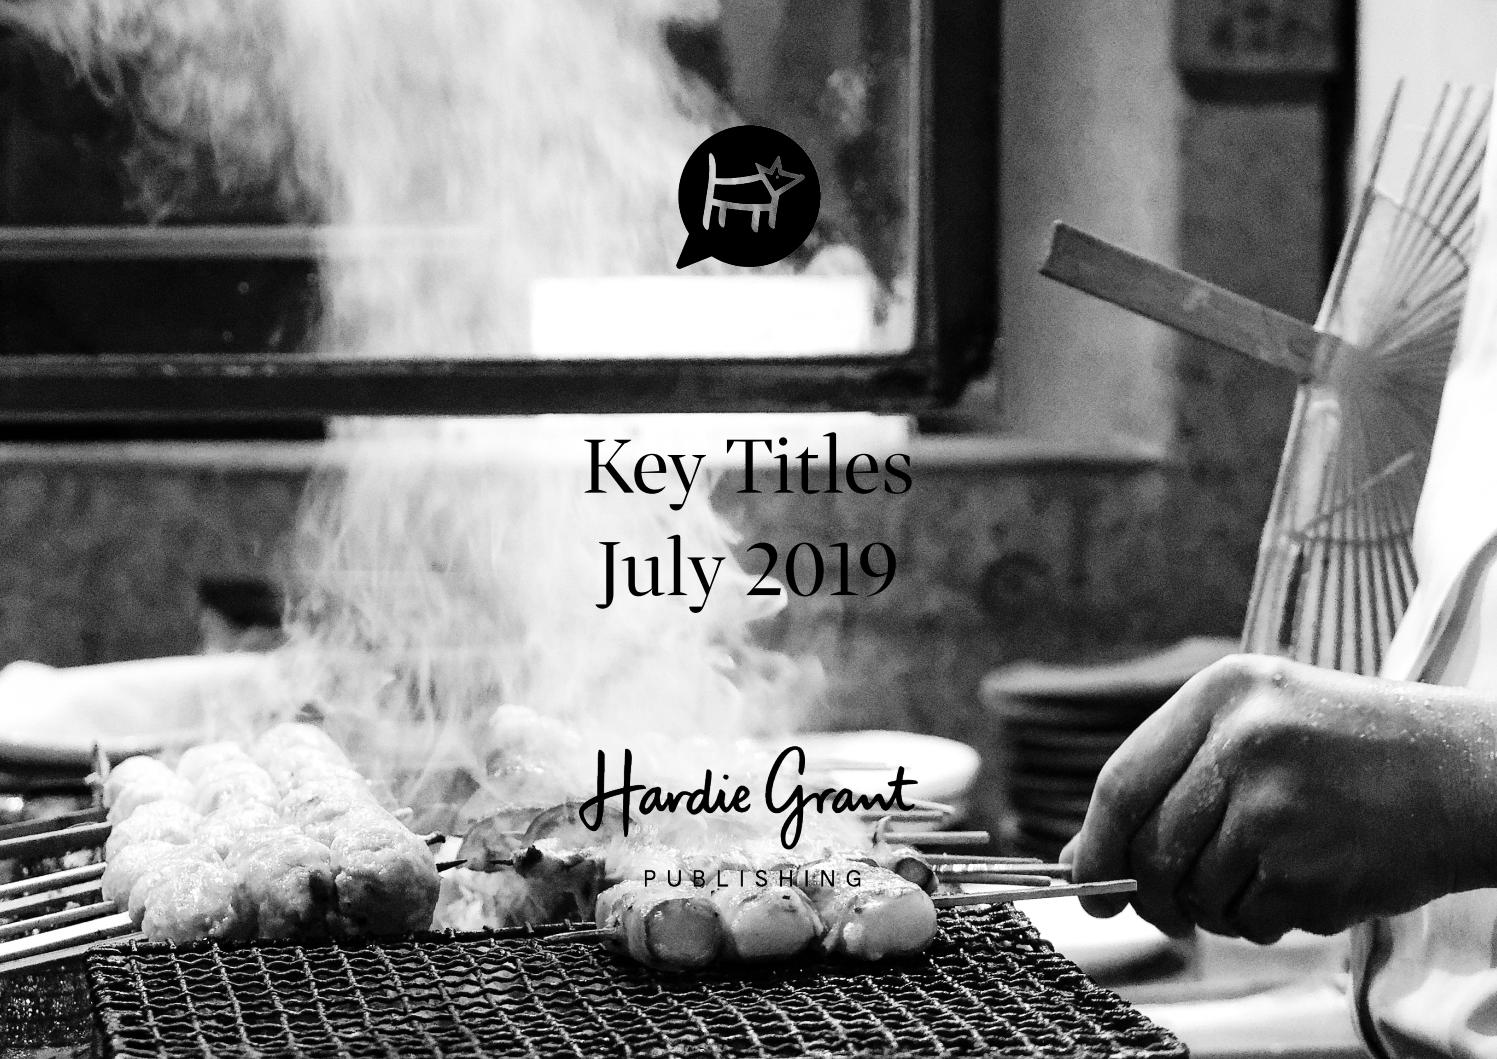 Hgbooks Key Titles July 2019 By Hardie Grant Publishing Issuu - as roblox life clothing store billboard guy barf celebrity 2